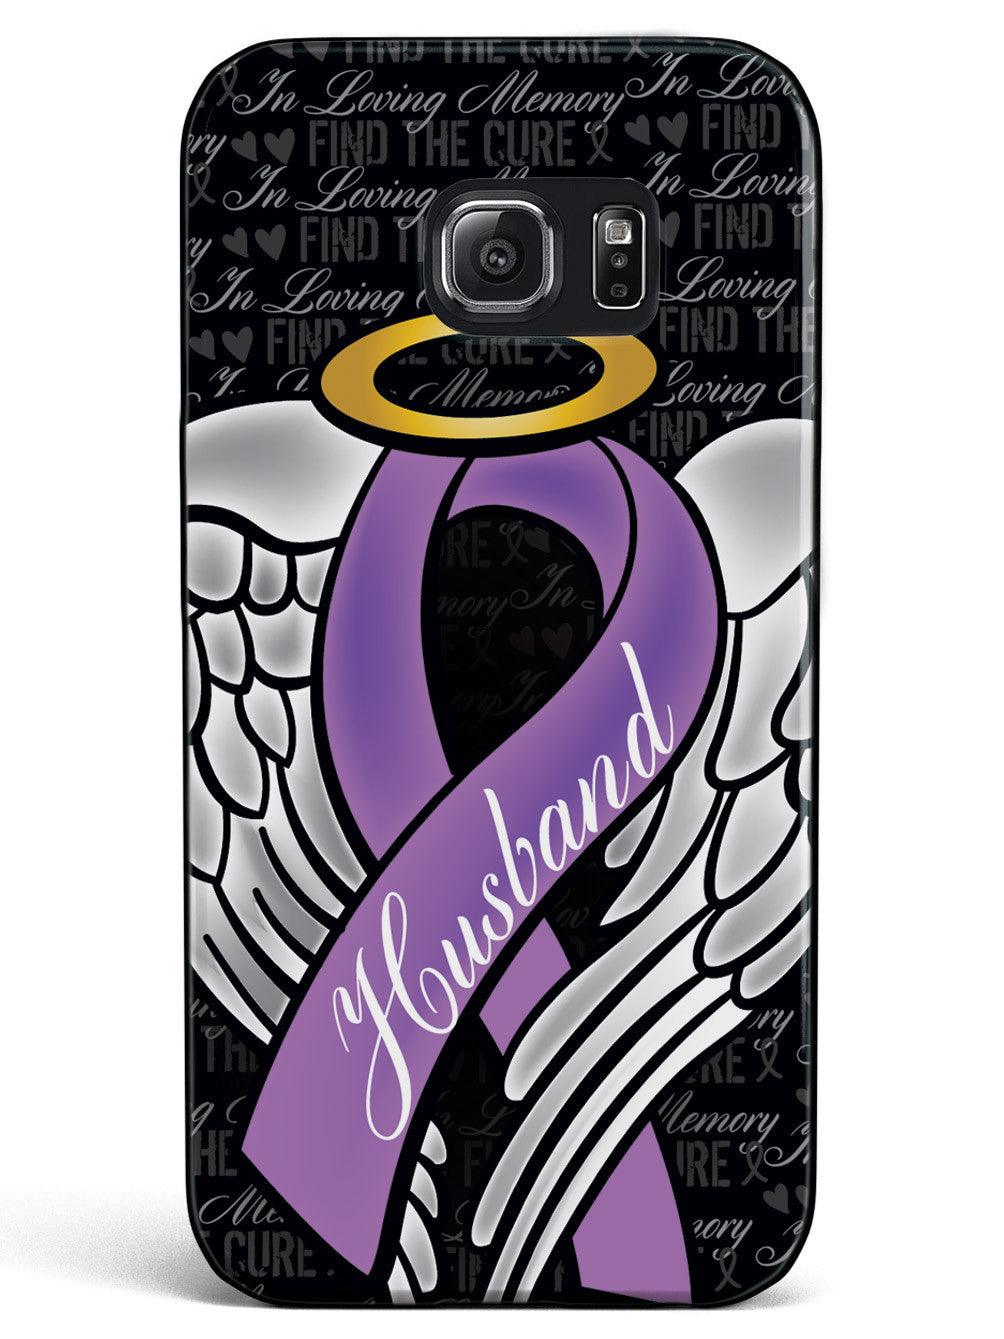 In Loving Memory of My Husband - Purple Ribbon Case